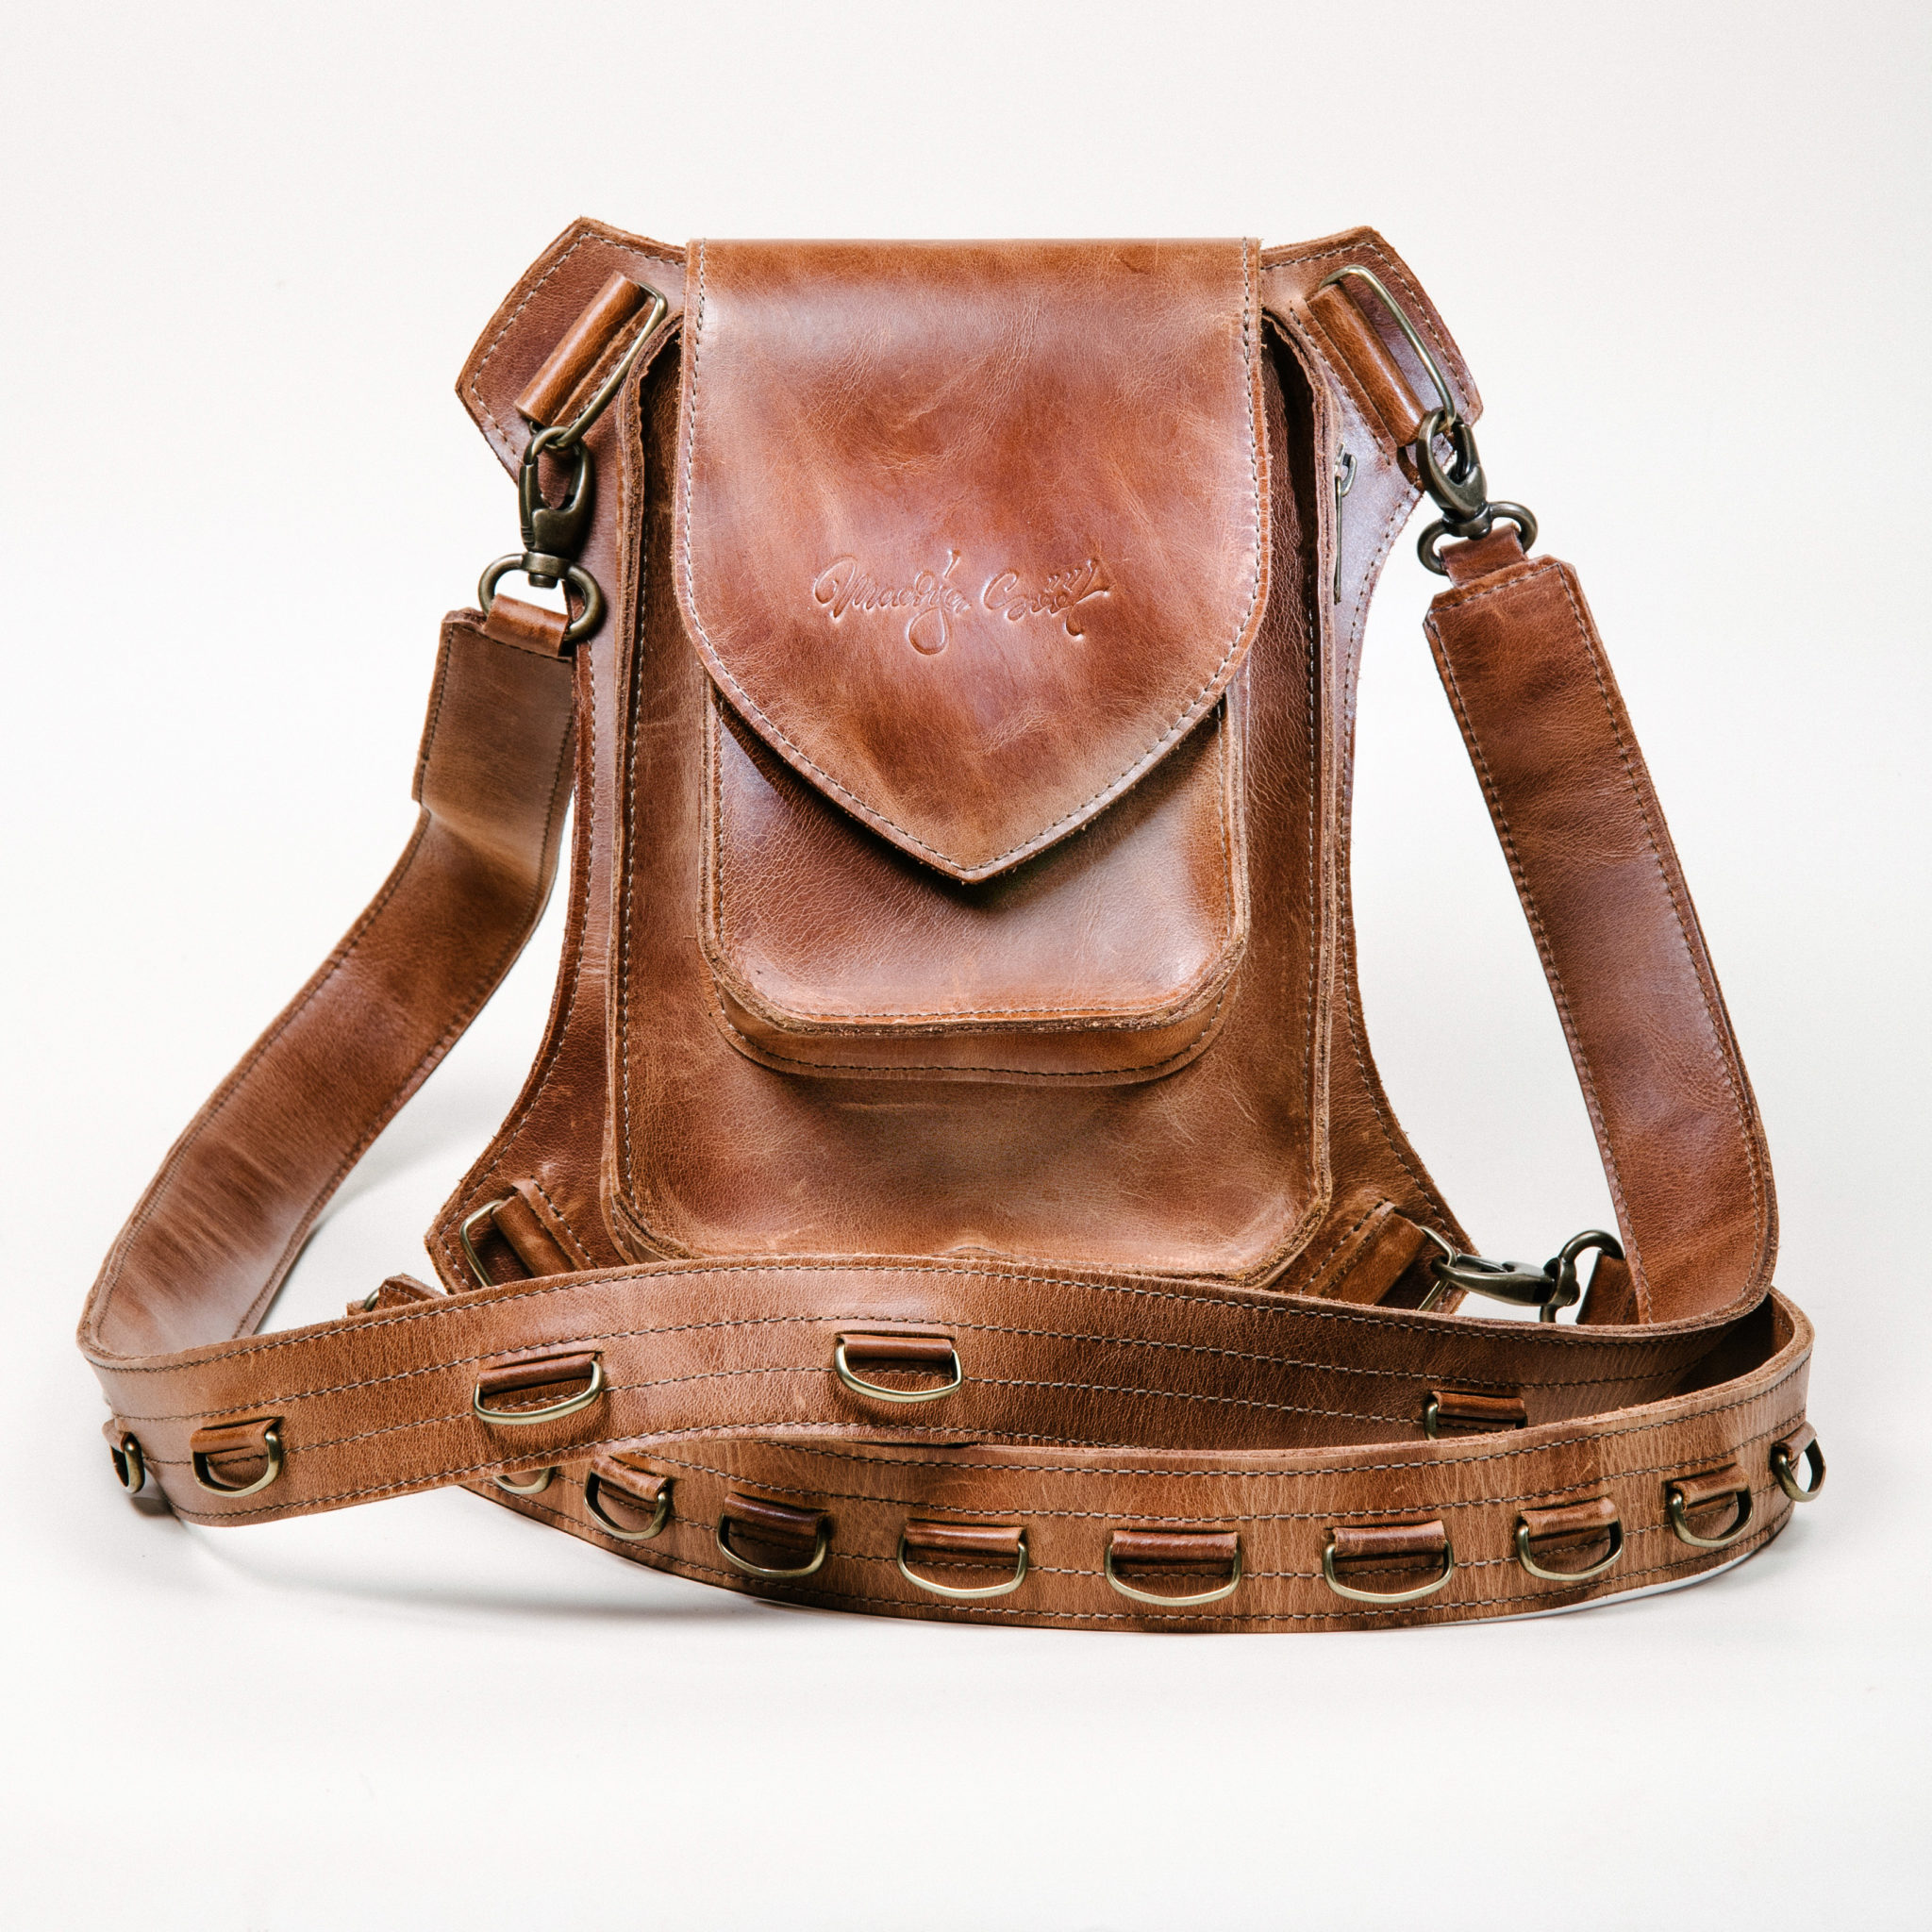 Brown multifunctional holster bag handcrafted by Maarja Sööt. Photo by Taavi Lutsar.